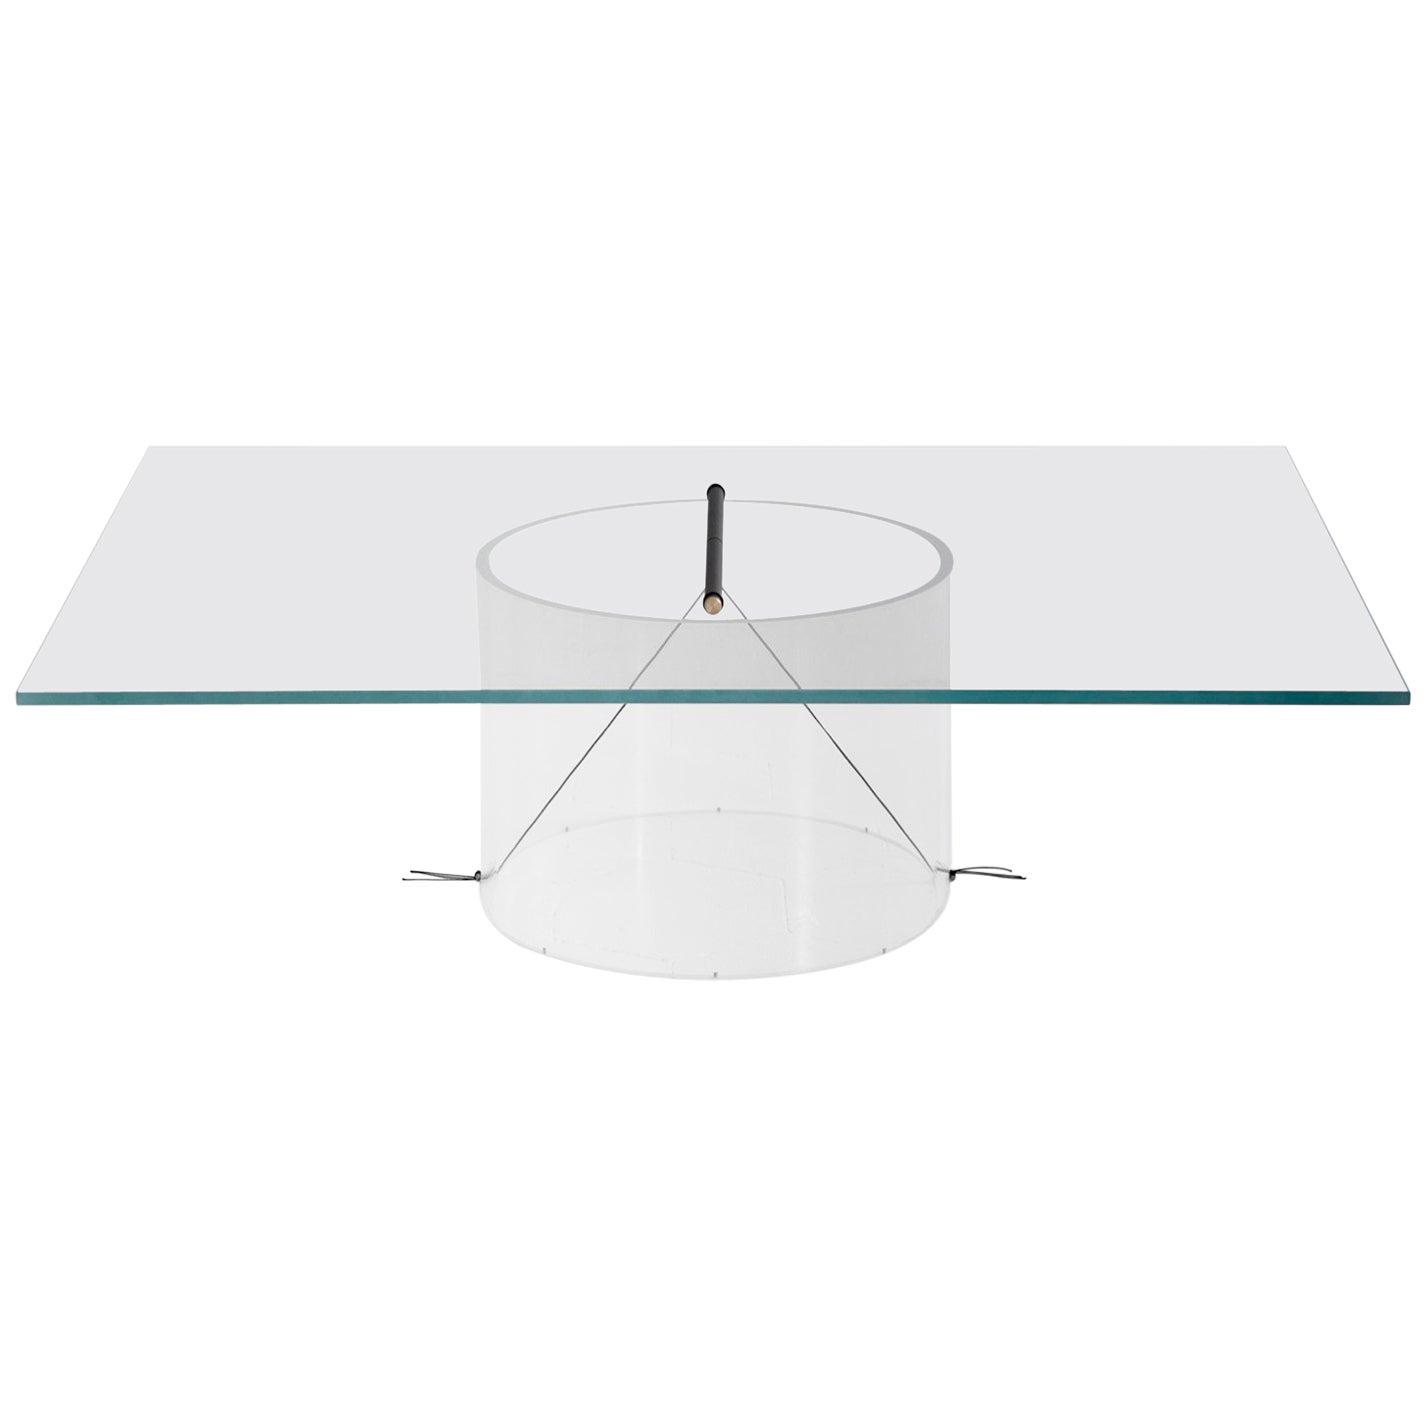 Equilibrium Low Table with Glass Top by Guglielmo Poletti